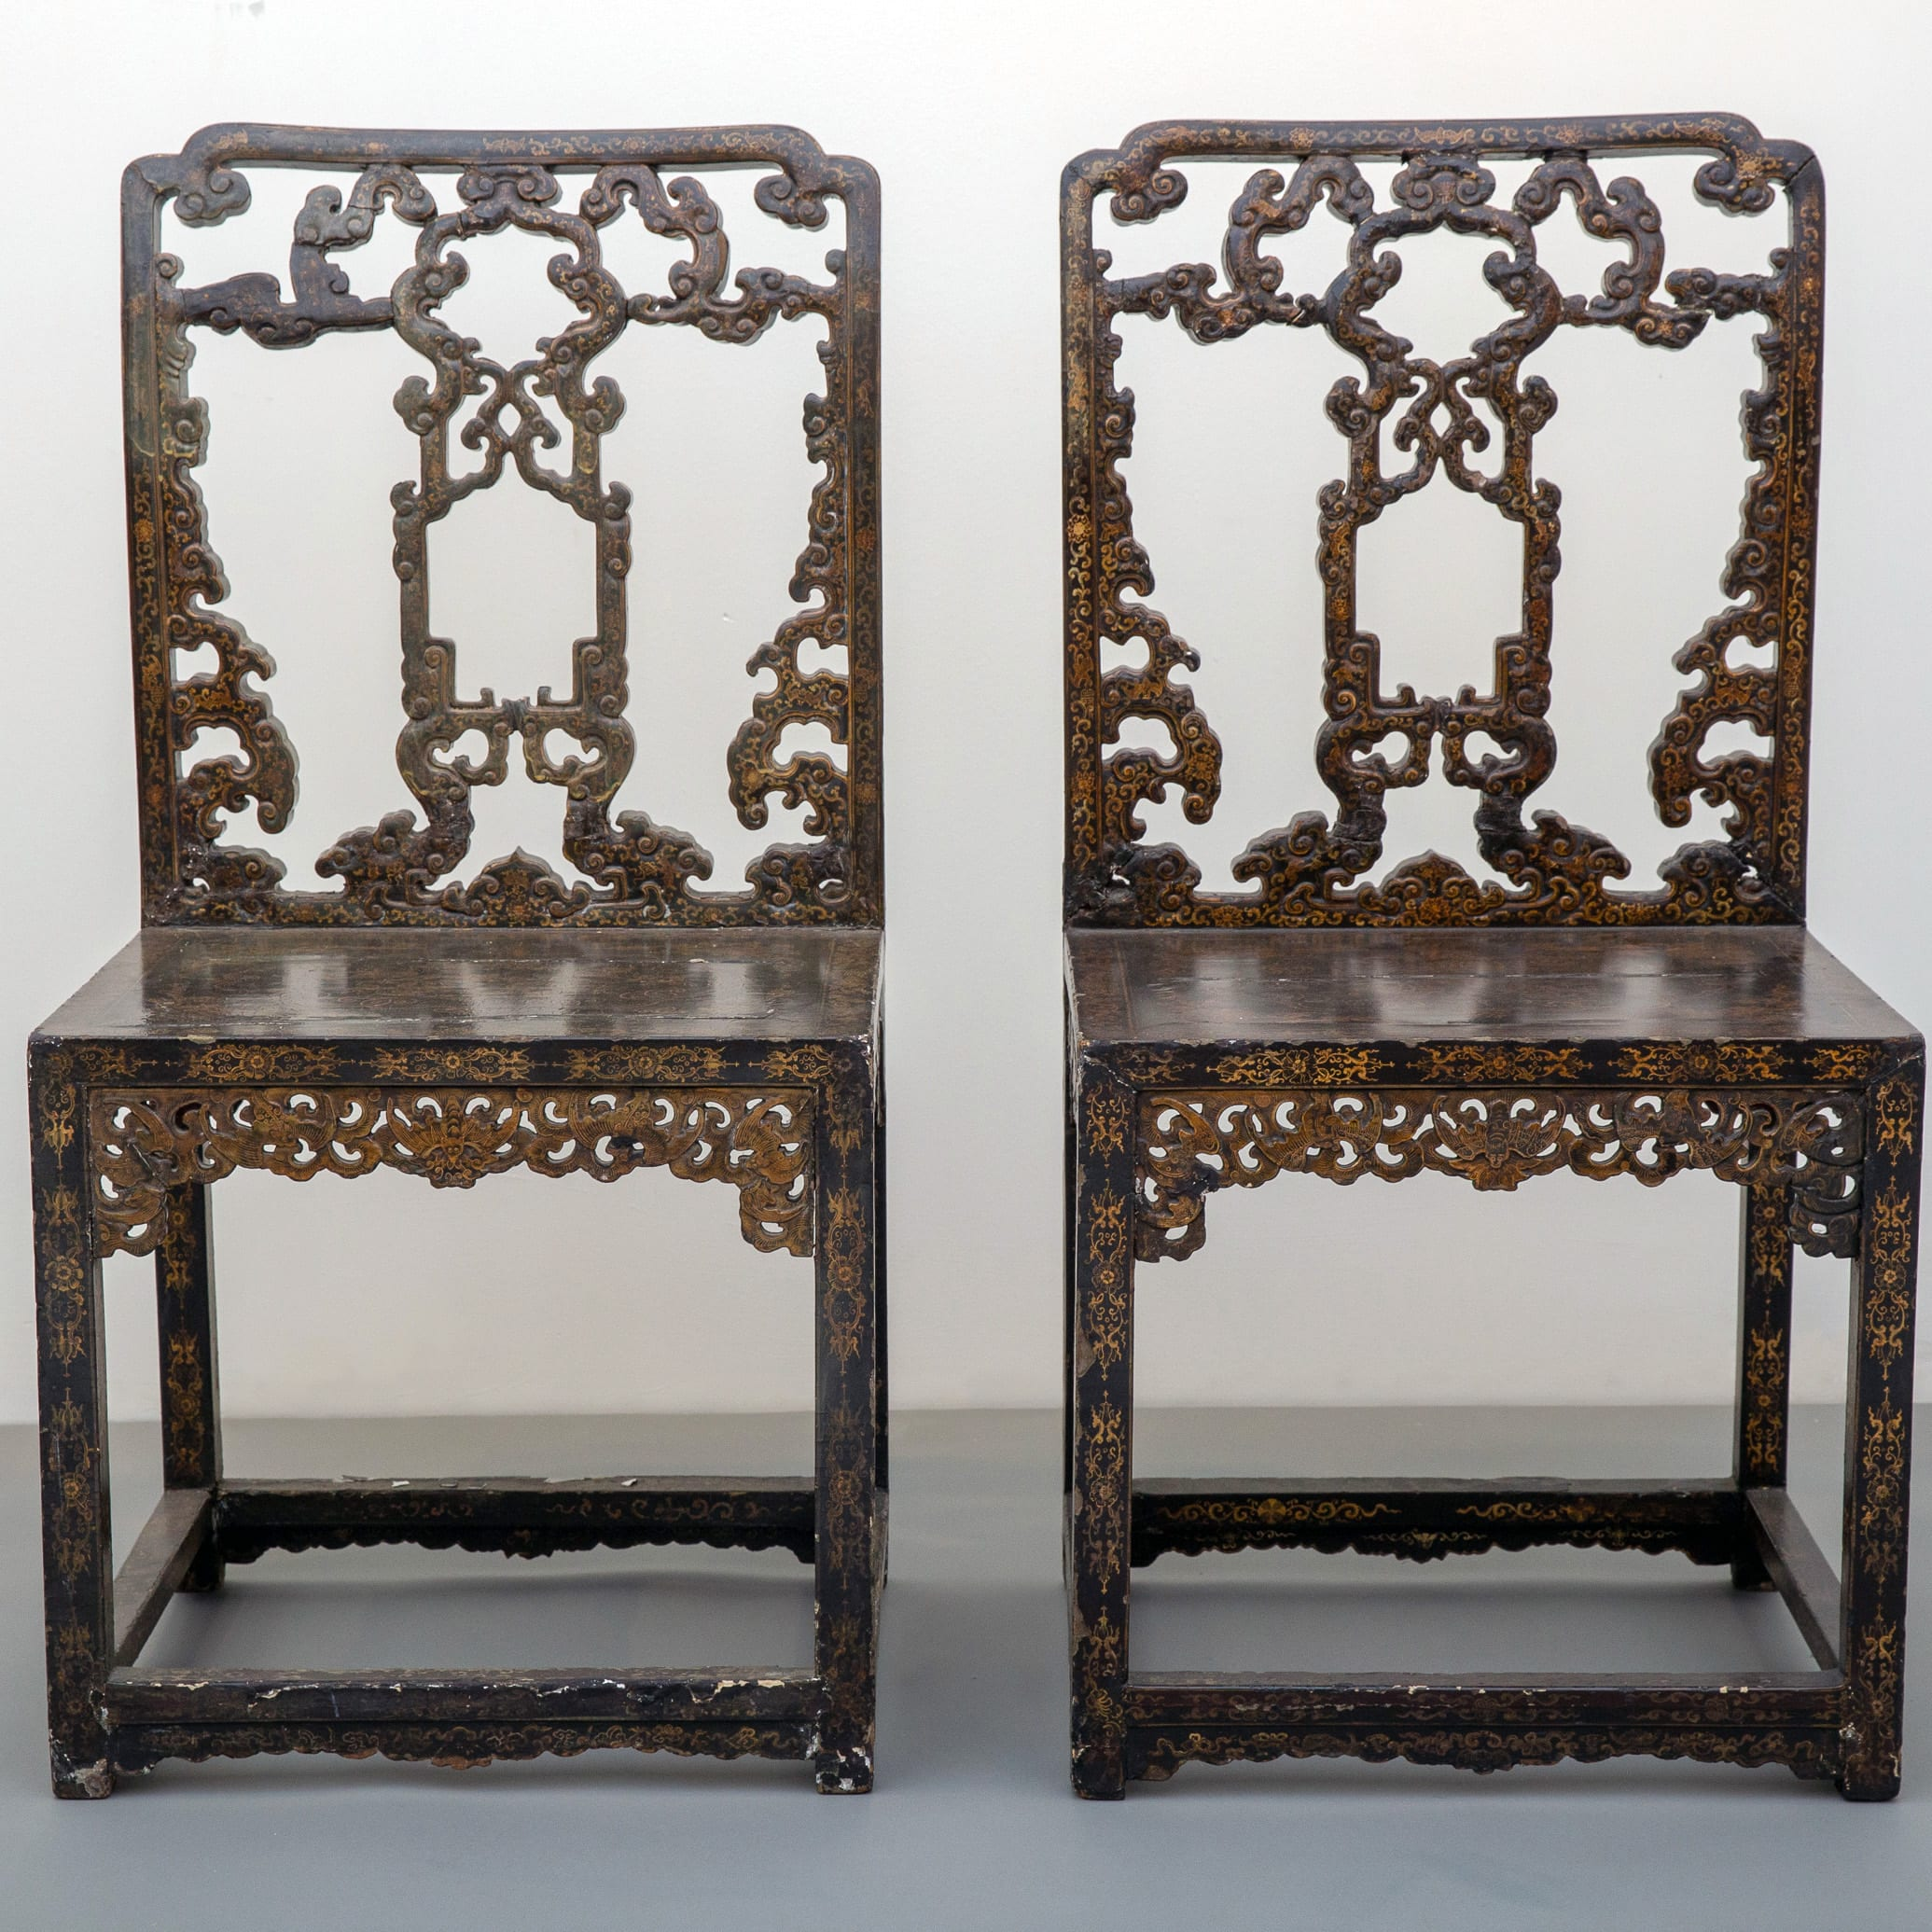 Lot 277: Pair of Qing Imperial Chinese Lacquered Chairs